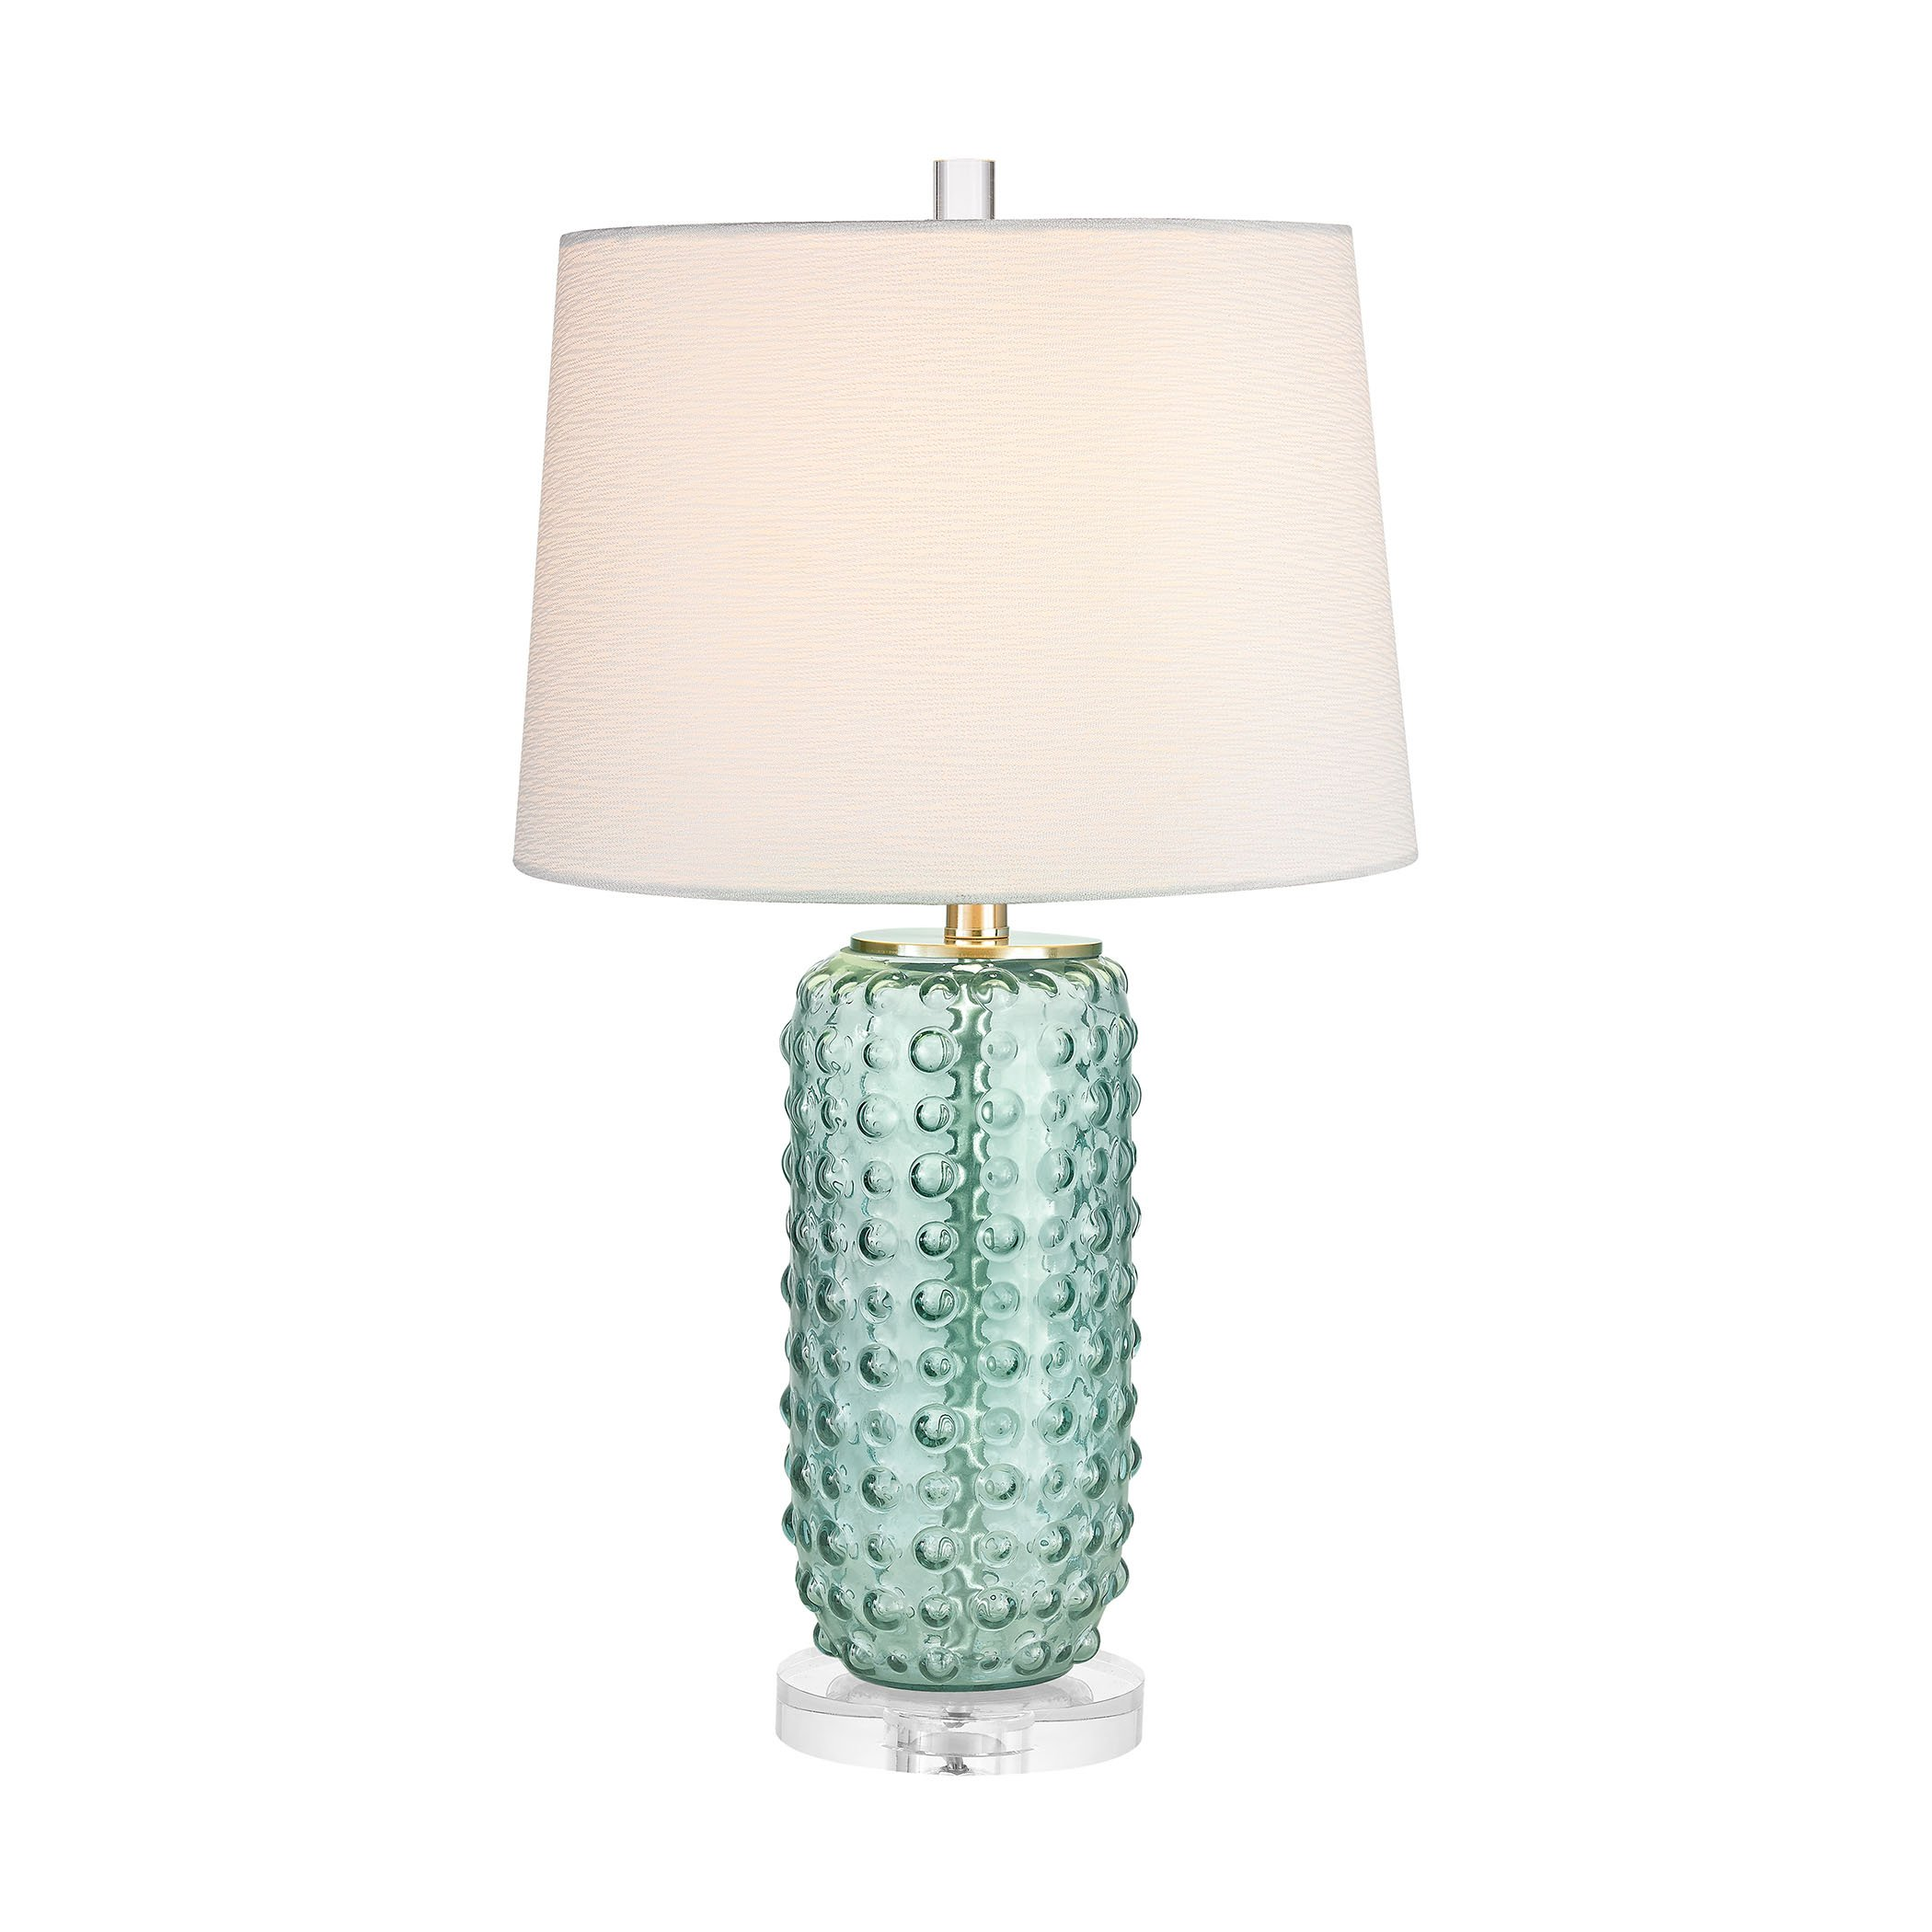 Lamp Works D2924 Caicos Table Lamp, 15'' x 15'' x 25'' by Lampworks (Image #1)